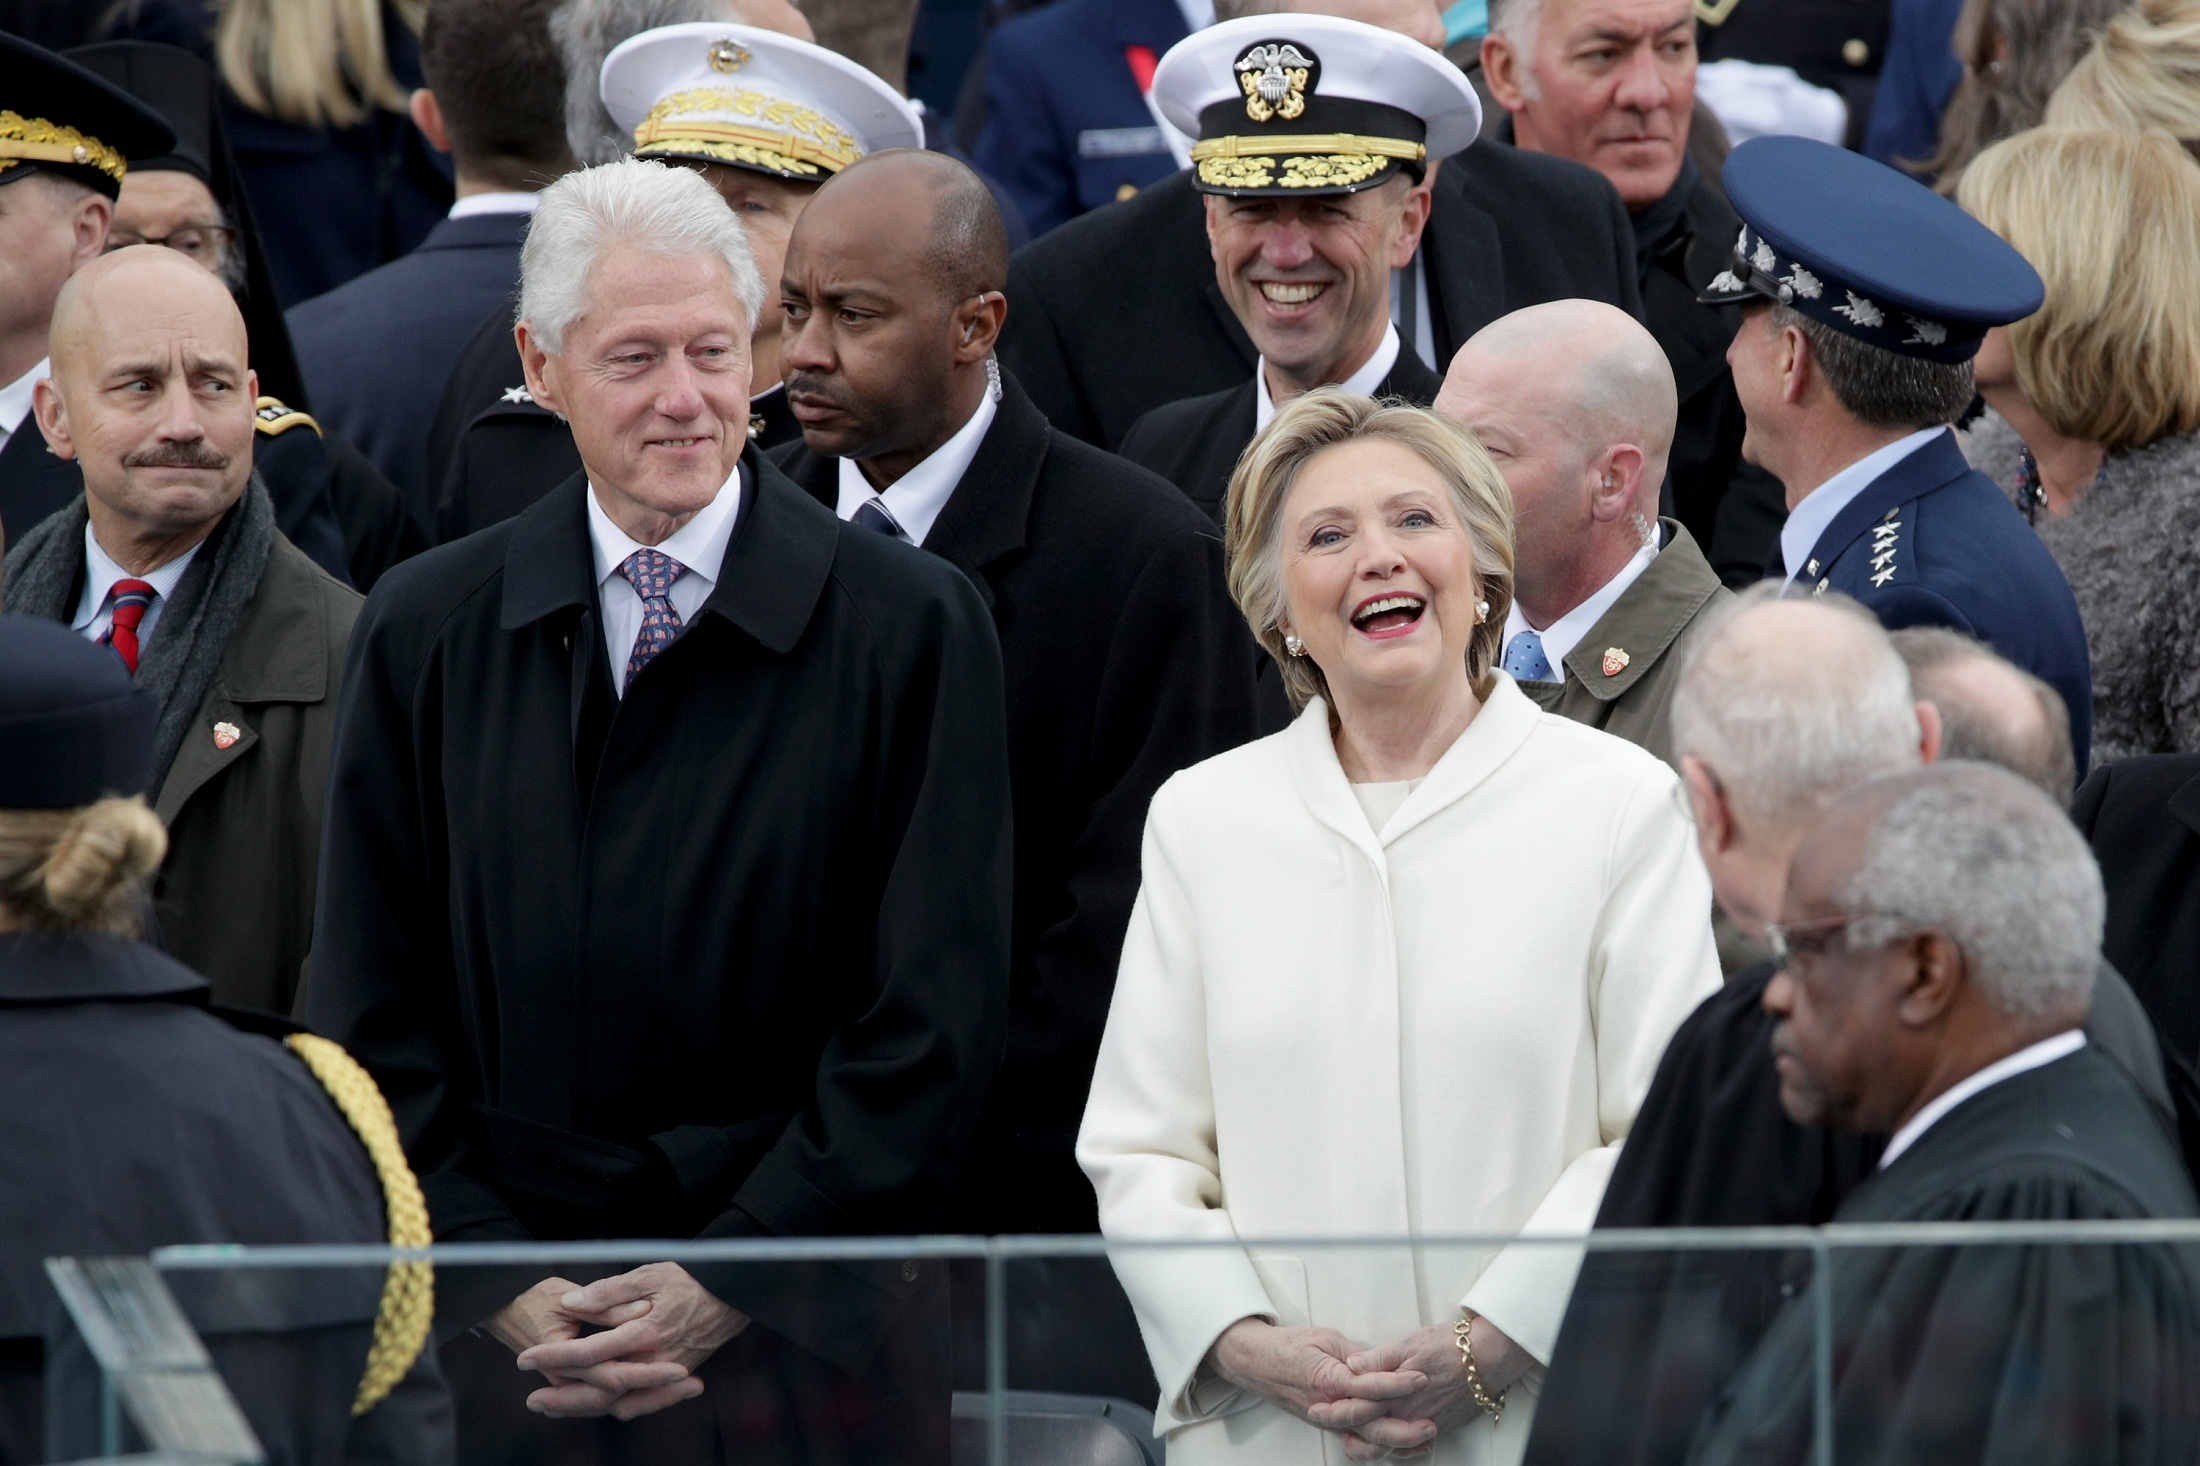 WASHINGTON, DC - JANUARY 20: Former President Bill Clinton and former Democratic presidential nominee Hillary Clinton arrive on the West Front of the U.S. Capitol on January 20, 2017 in Washington, DC. In today's inauguration ceremony Donald J. Trump becomes the 45th president of the United States.   Alex Wong/Getty Images/AFP